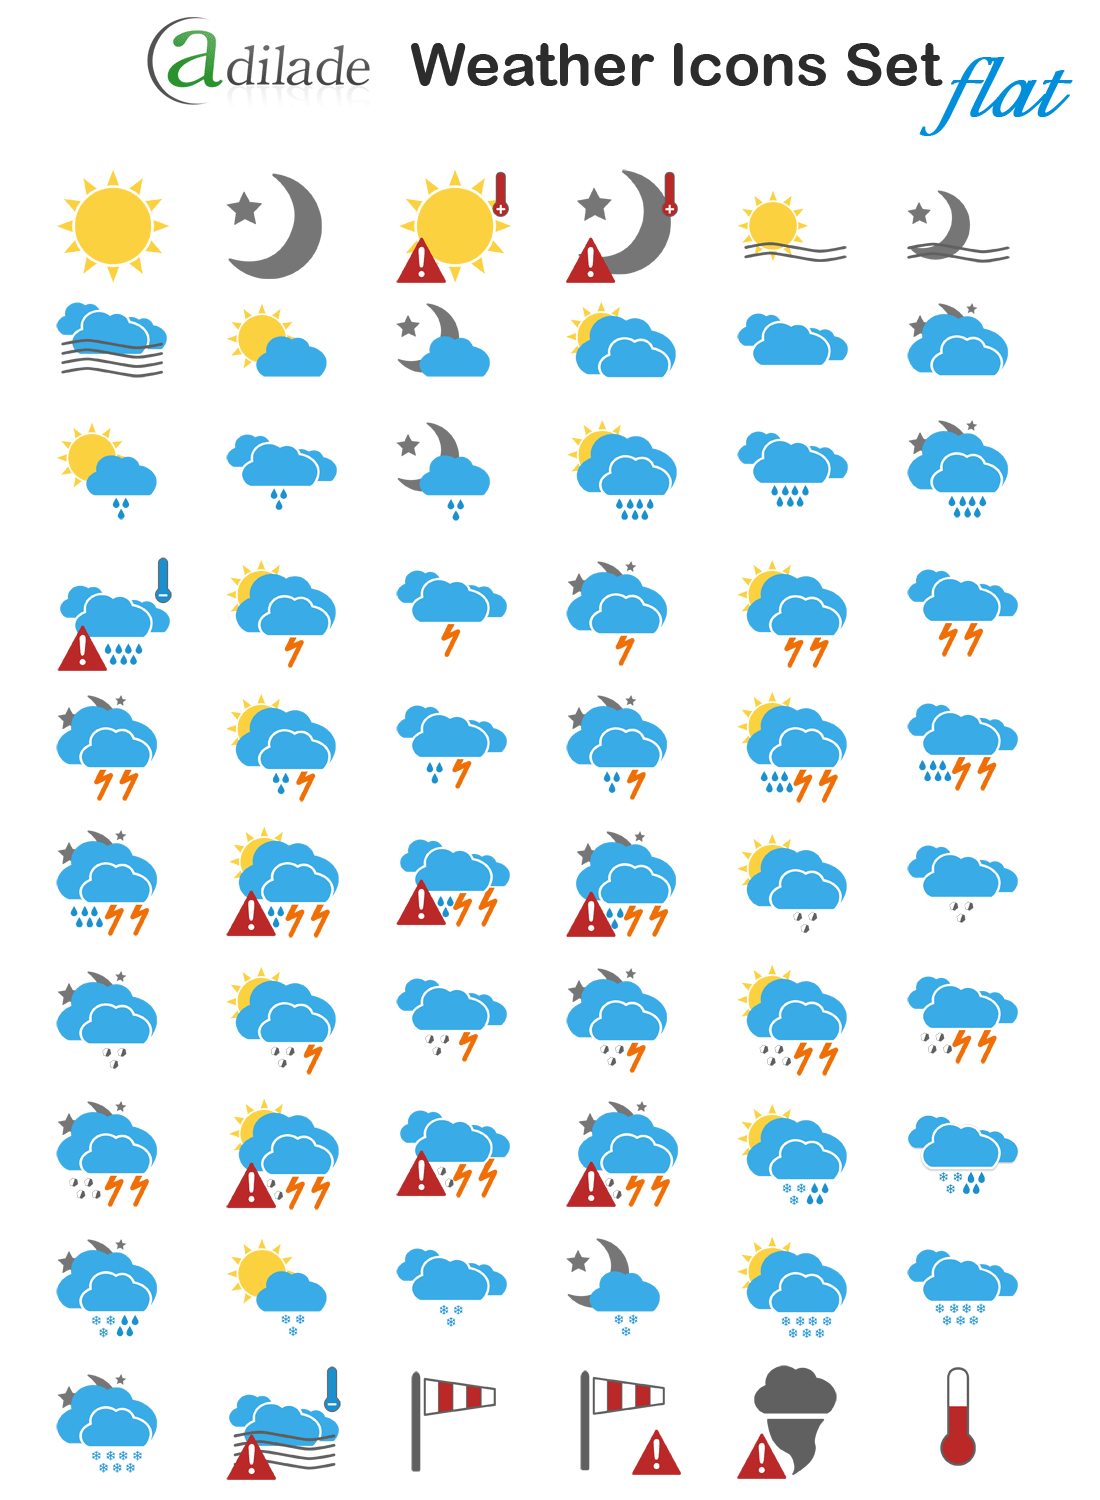 Adilade Weather Icons Set Flat Version